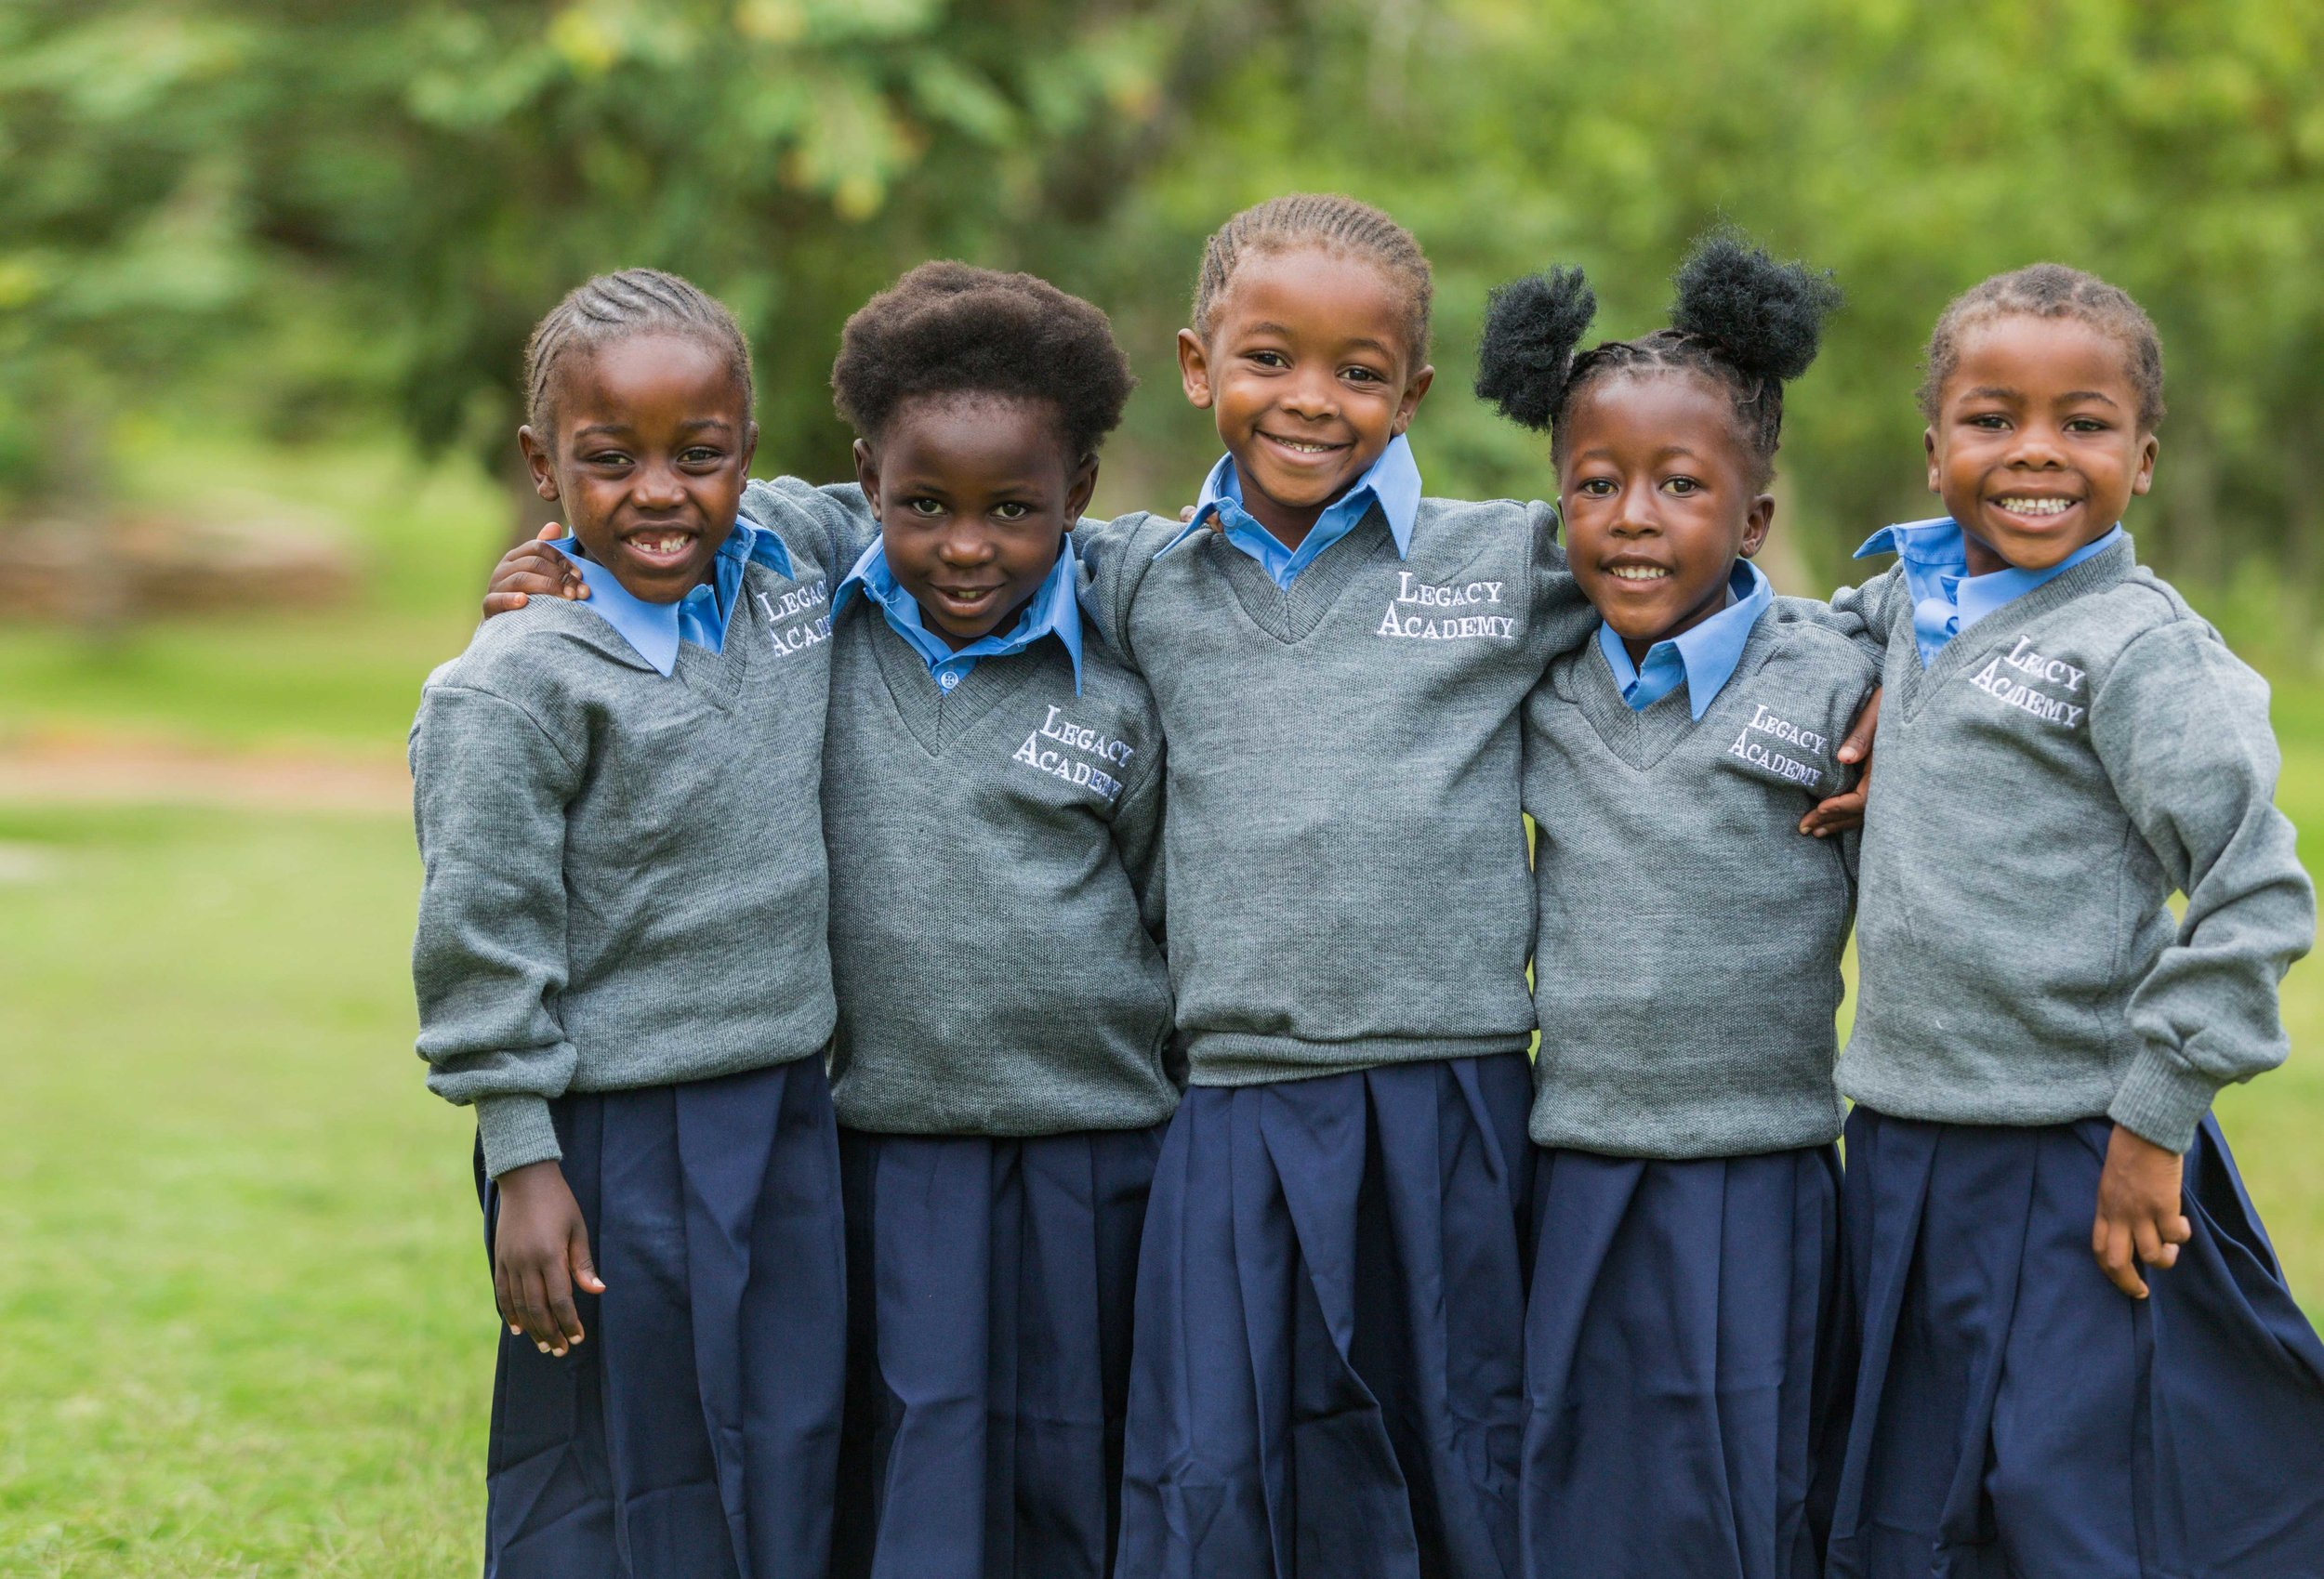 We Need Your Help - From a private Christian education at one of our 26 Legacy Academy schools to full-time rescue at our Tree of Life Children's Village, your faithful support will transform lives through our holistic approach of meeting the physical, emotional, intellectual and spiritual needs of the children in Zambia.We need you with us!